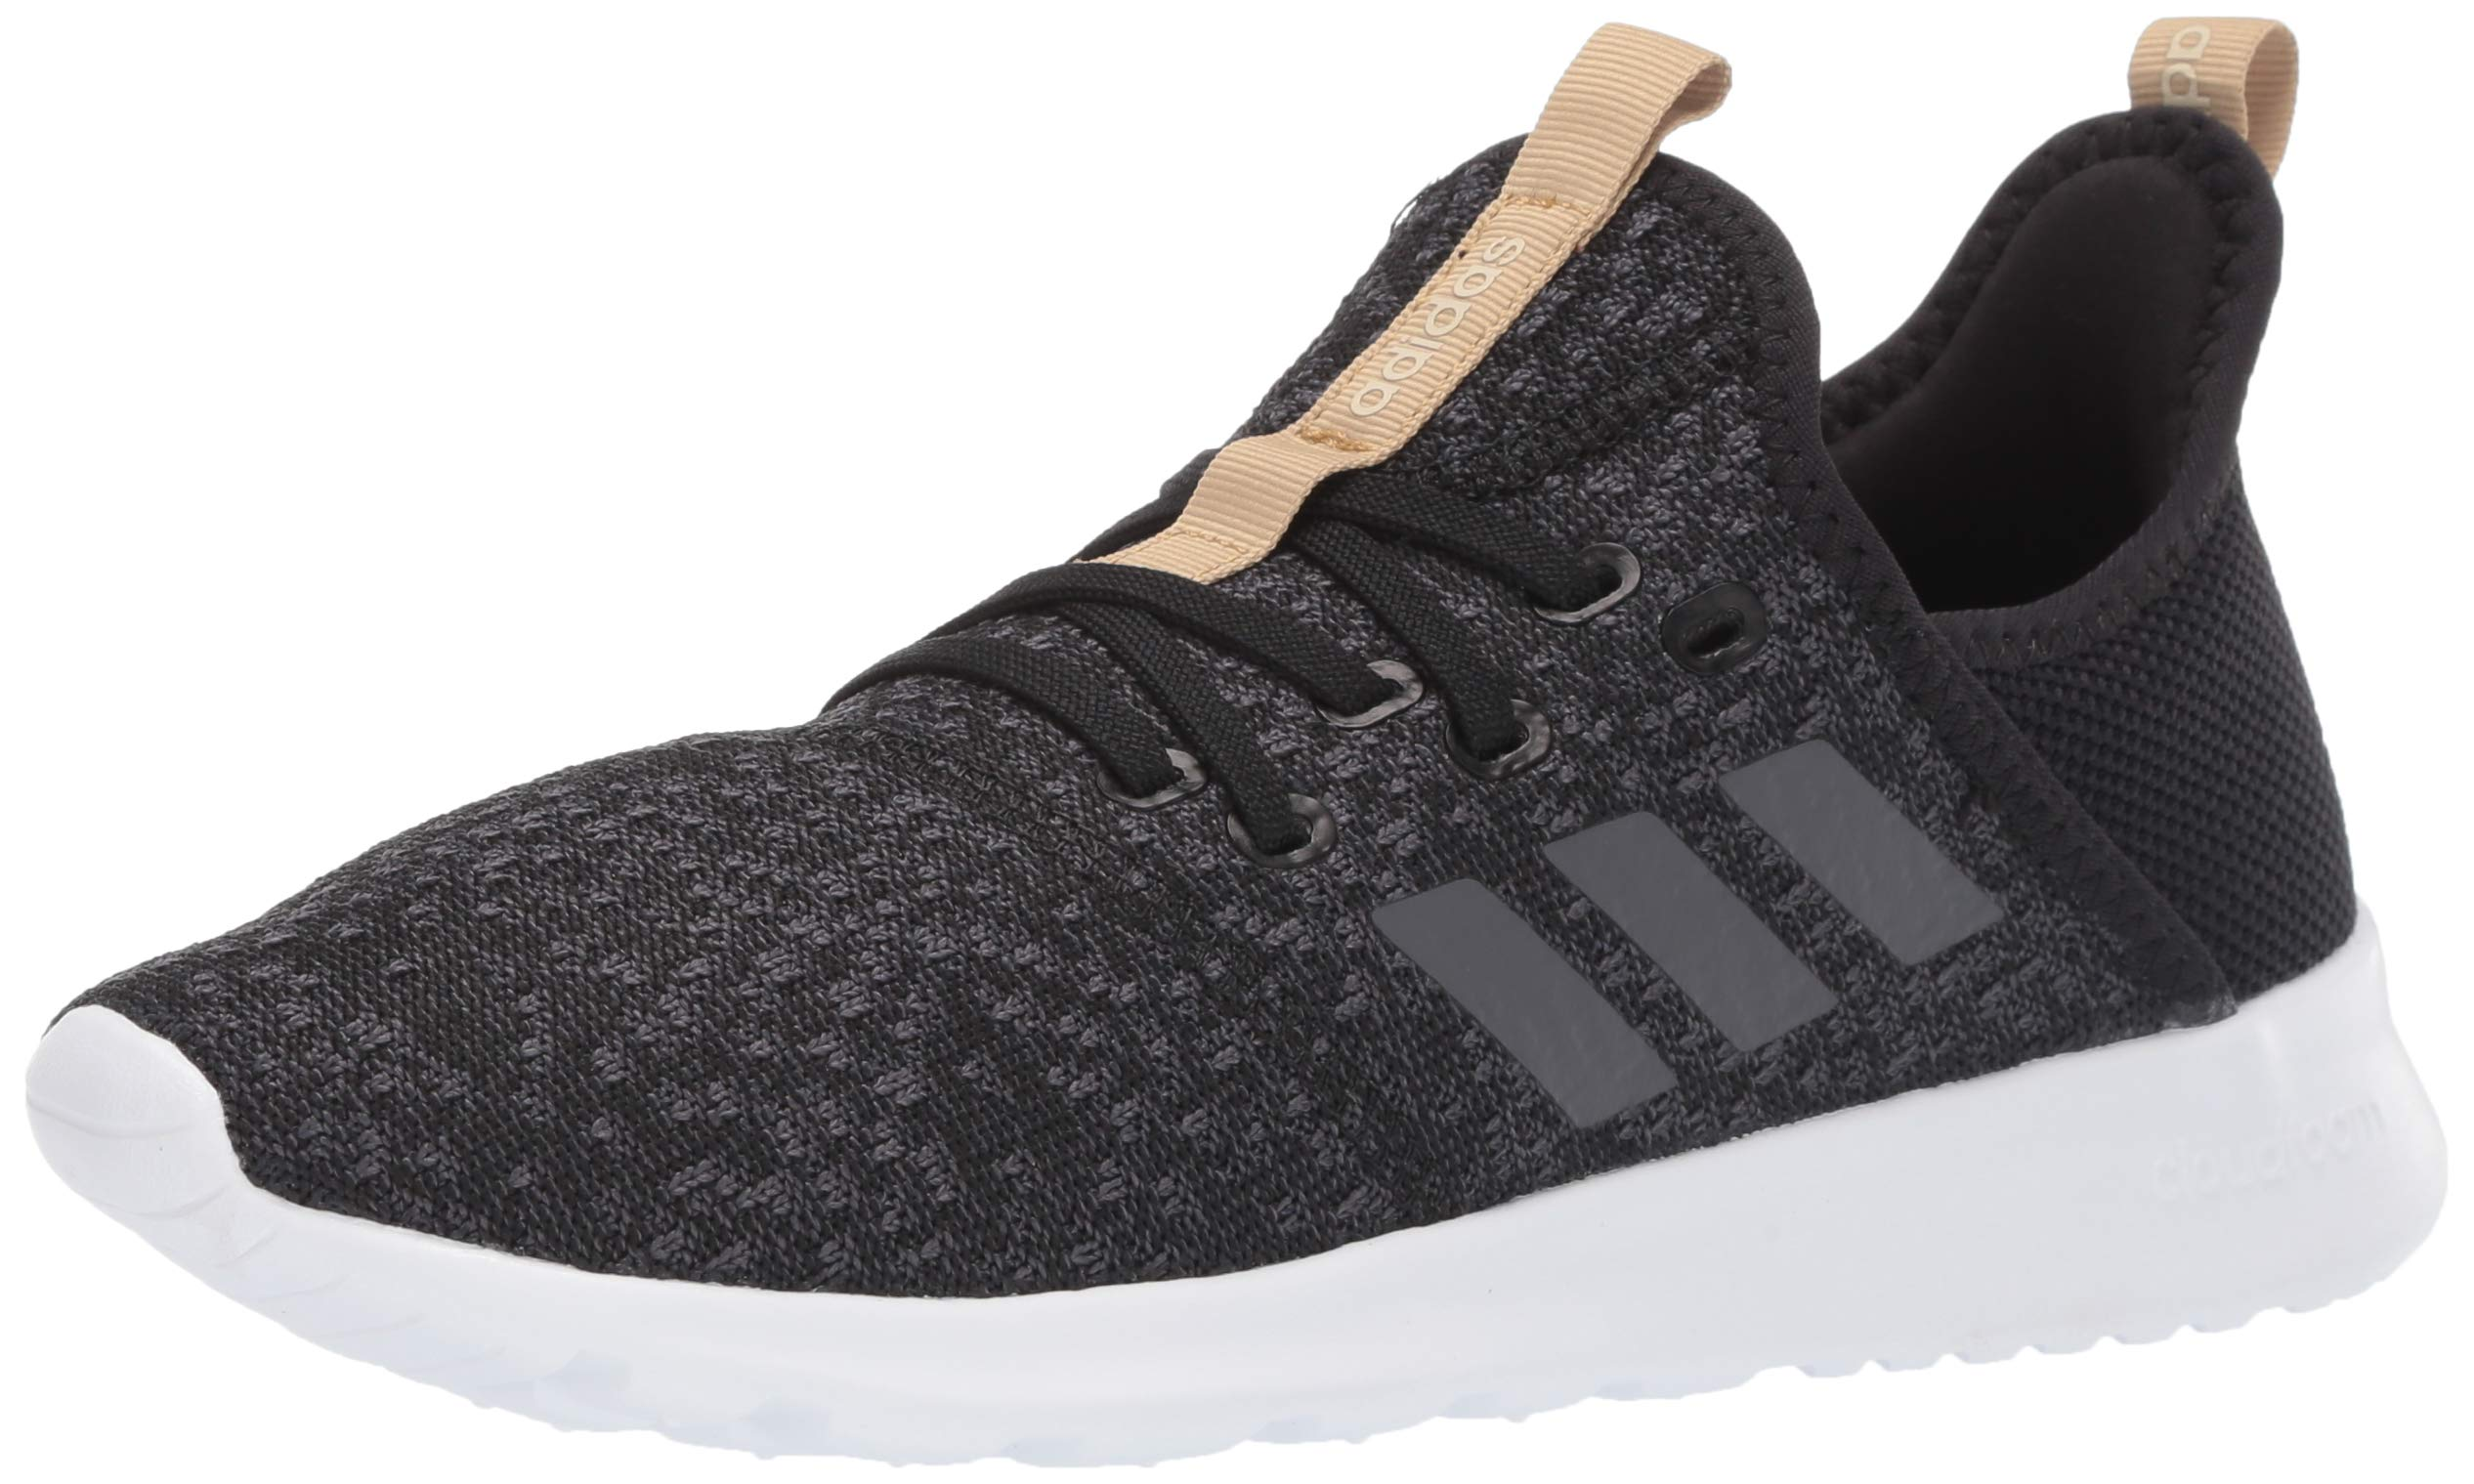 adidas Women's Cloudfoam Pure, Grey/Black, 5.5 M US by adidas (Image #1)